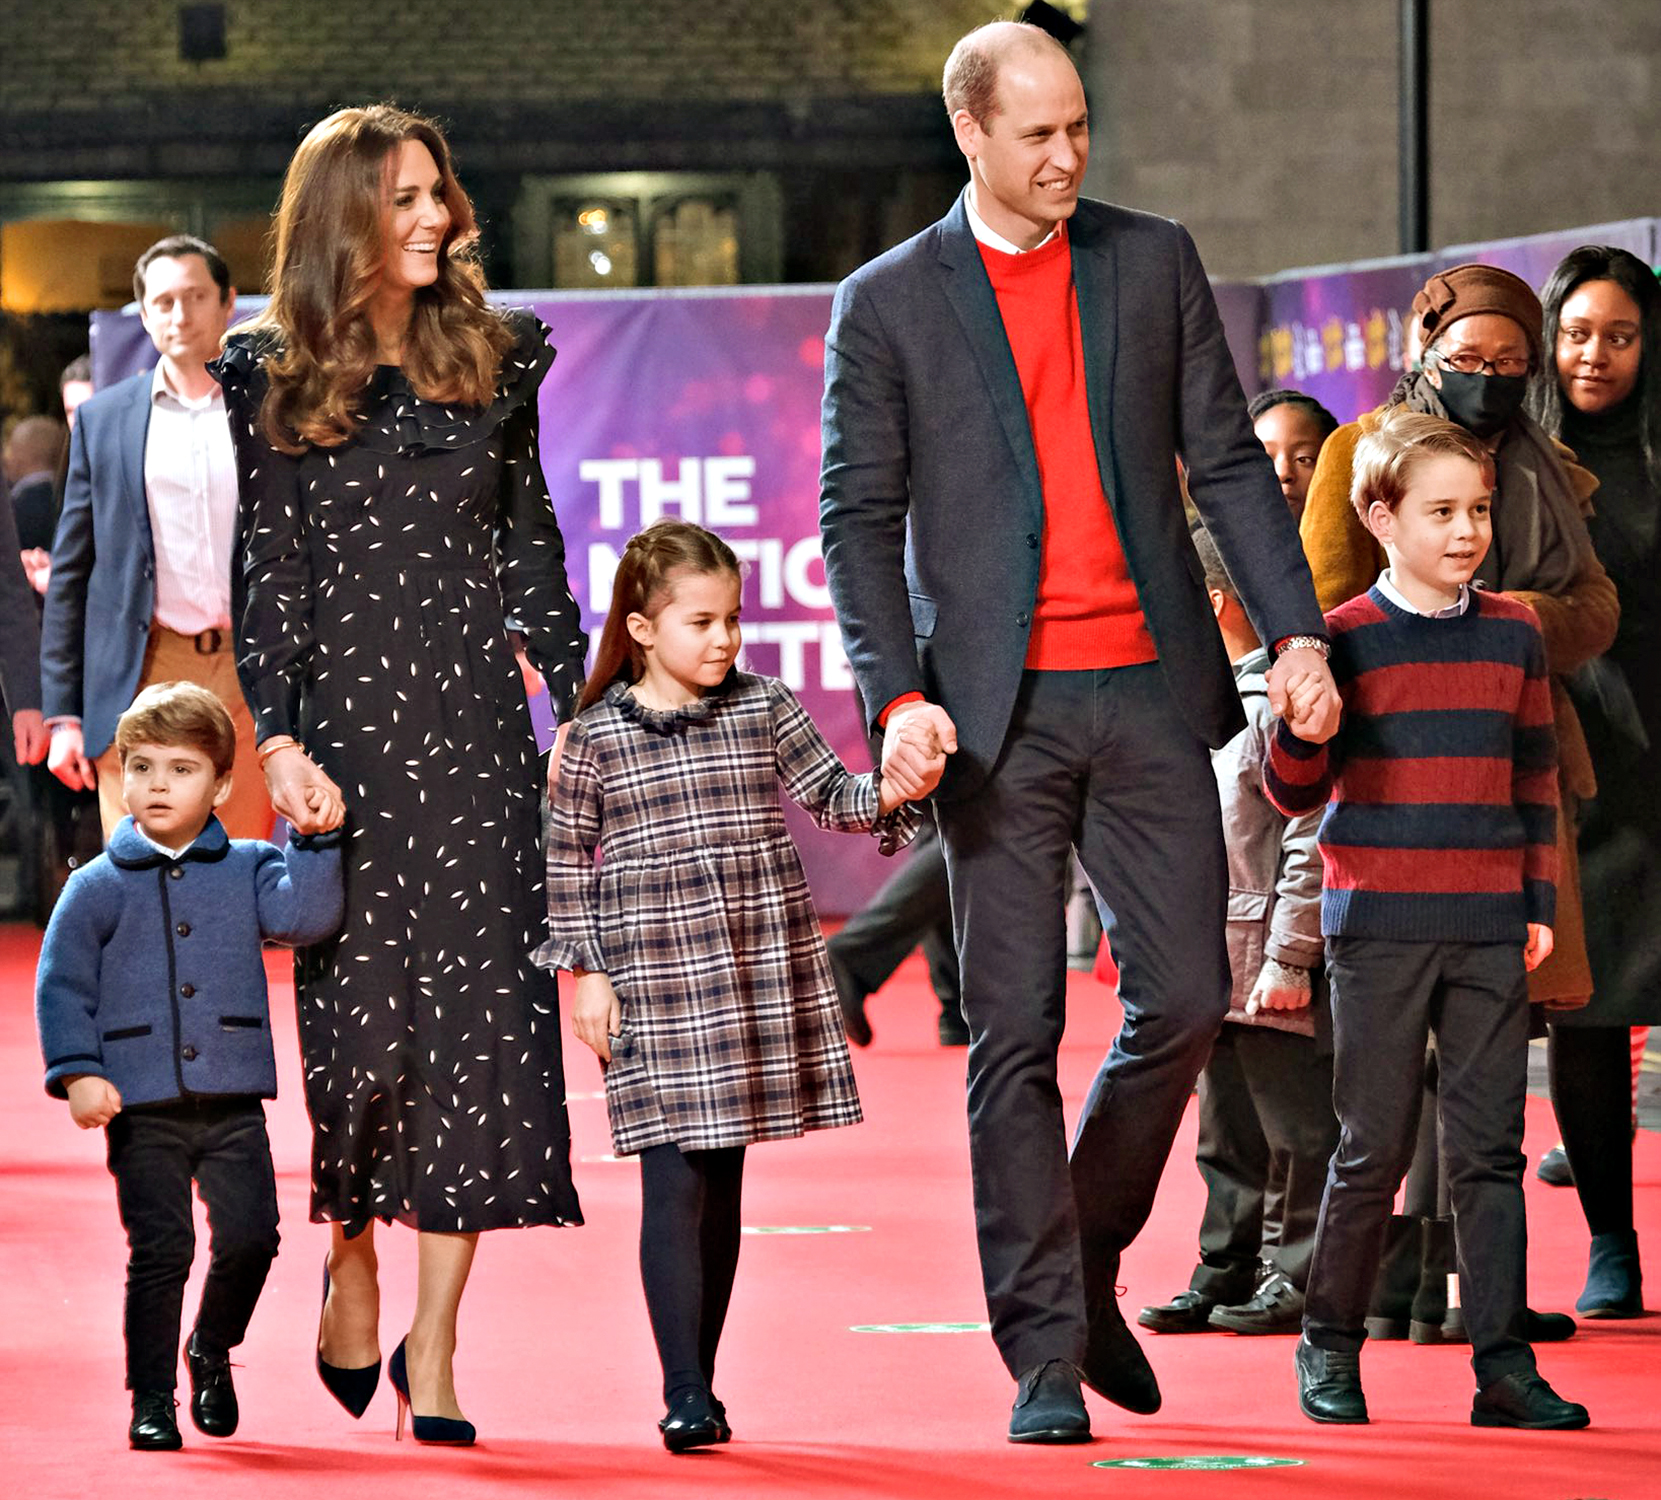 Kate Middleton Young Daughter Princess Fighting Cancer Shares Her Tragic Experience..